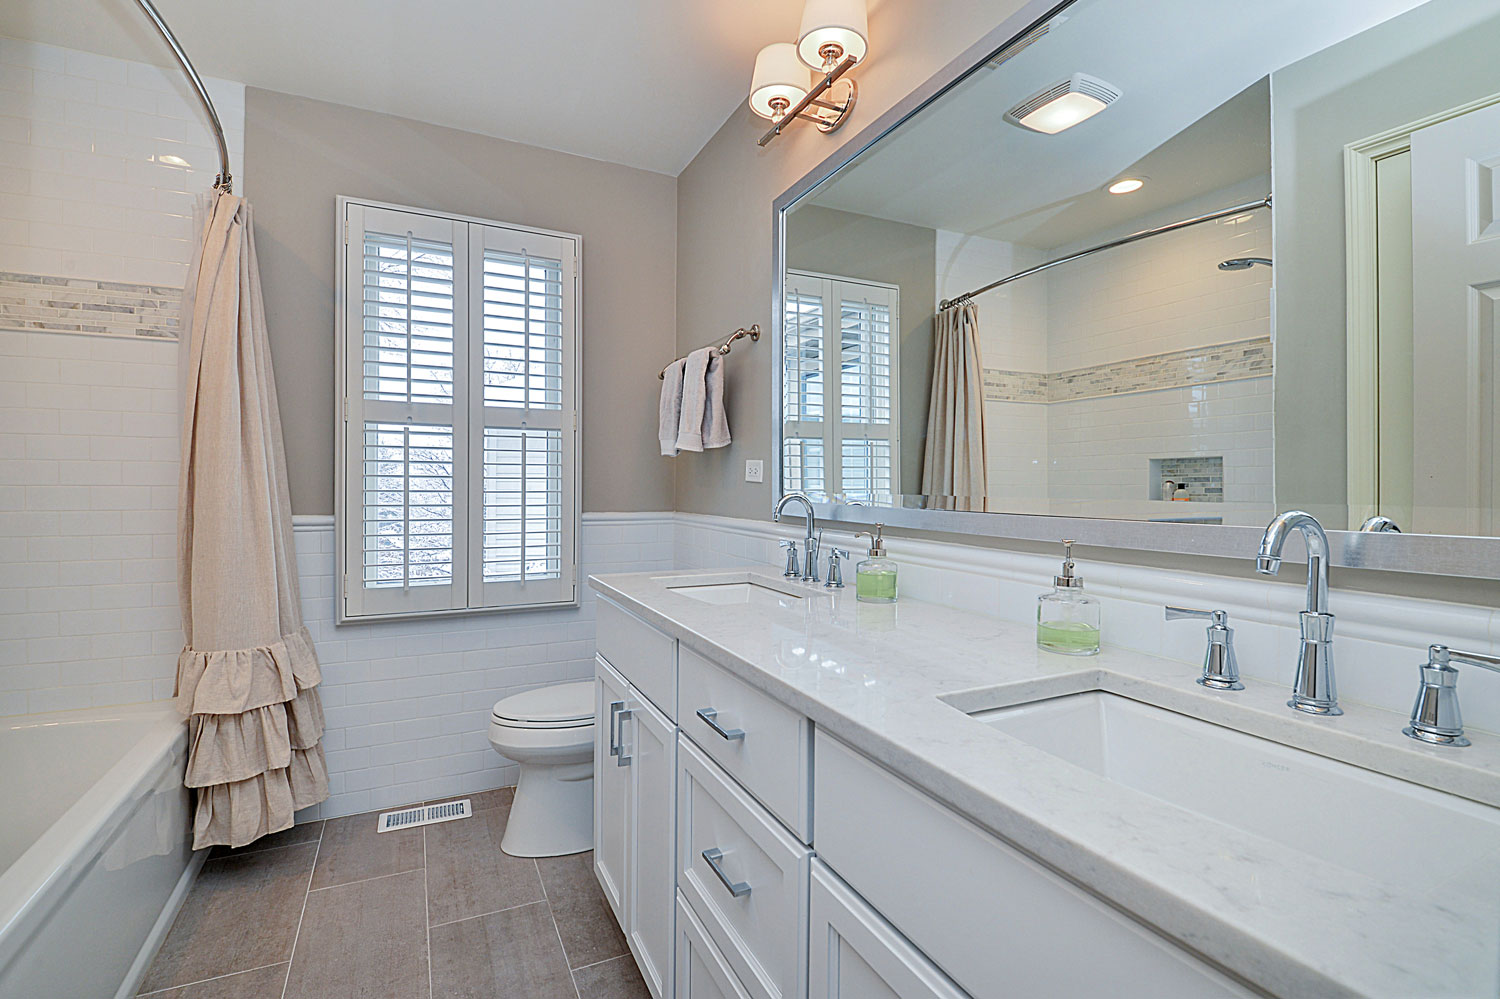 Carl susan 39 s hall bathroom remodel pictures home for Remodeling ideas for bathrooms